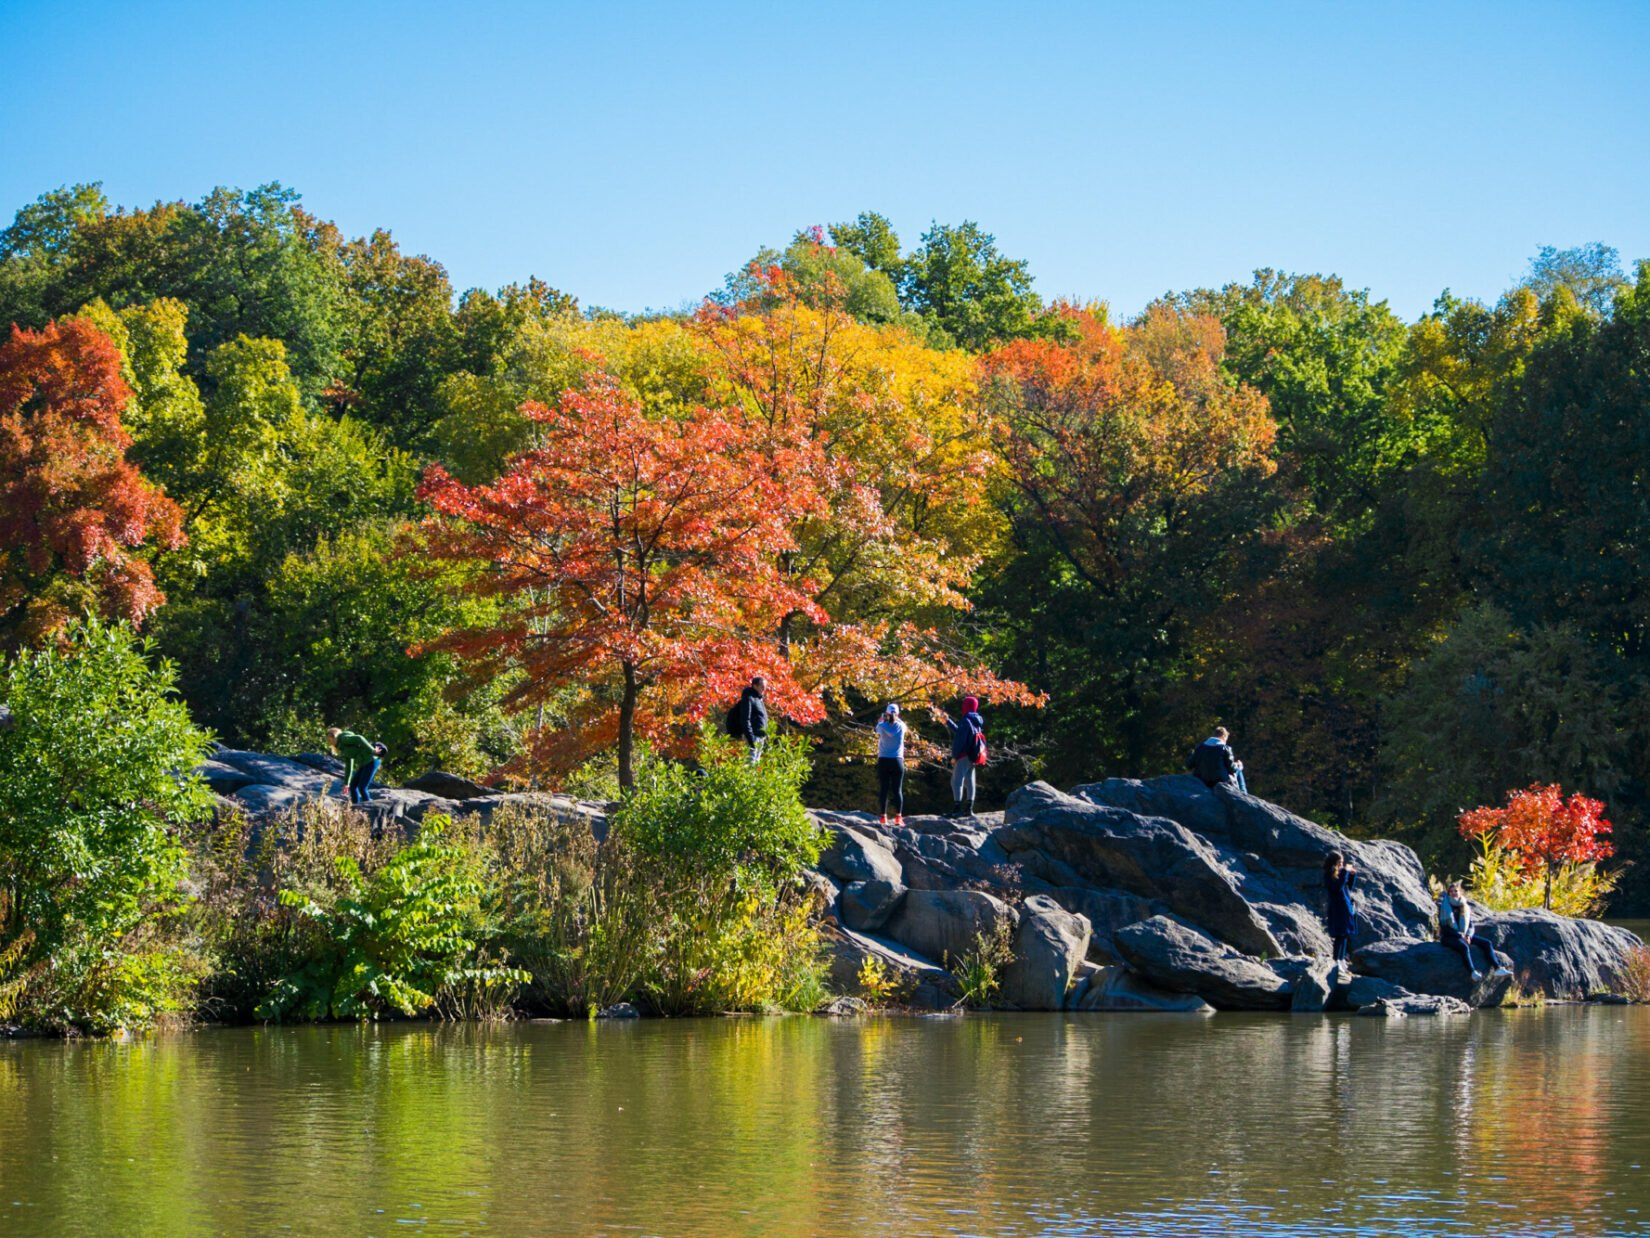 A fall view of Hernshead, overlooking the Lake, with Park visitors enjoying the bright foliage.